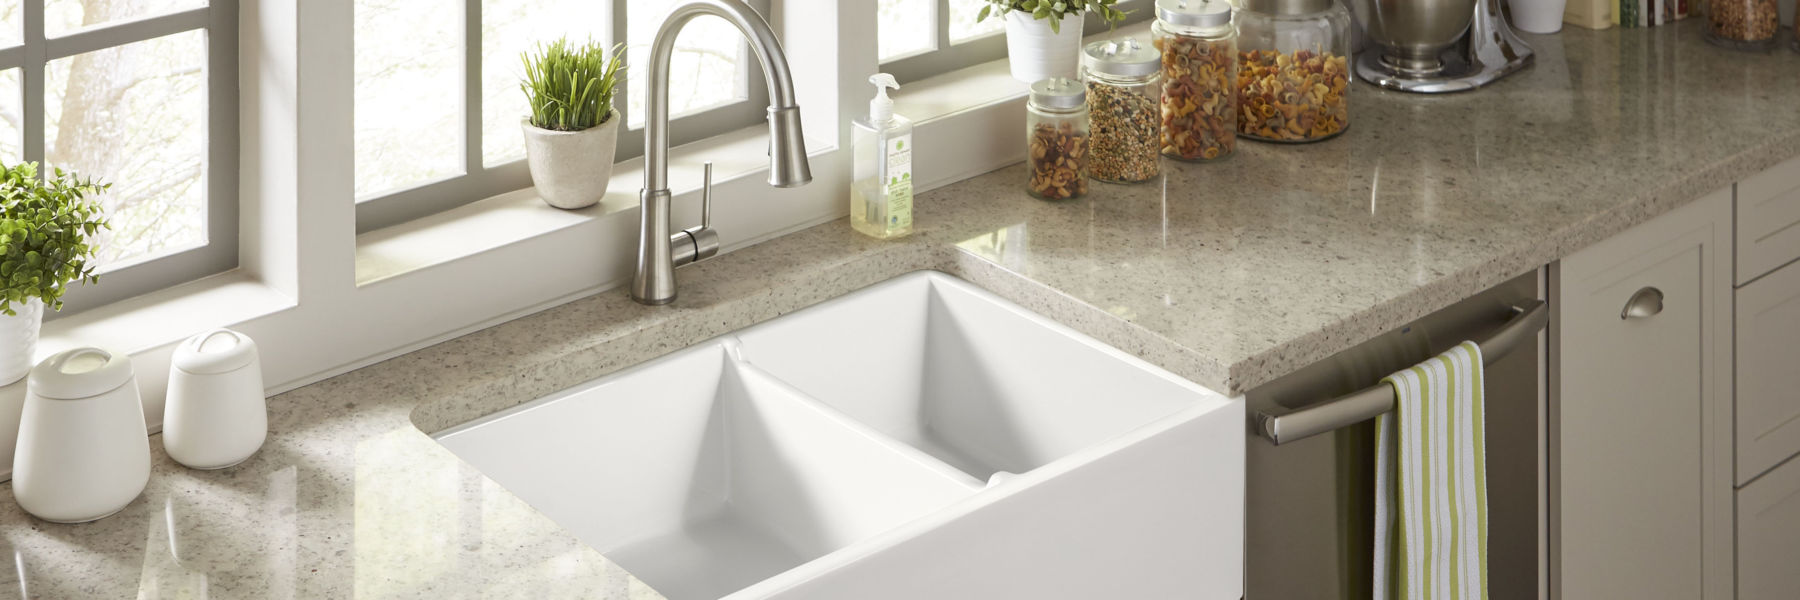 fireclay-farmhouse-kitchen-sink-white-brooks